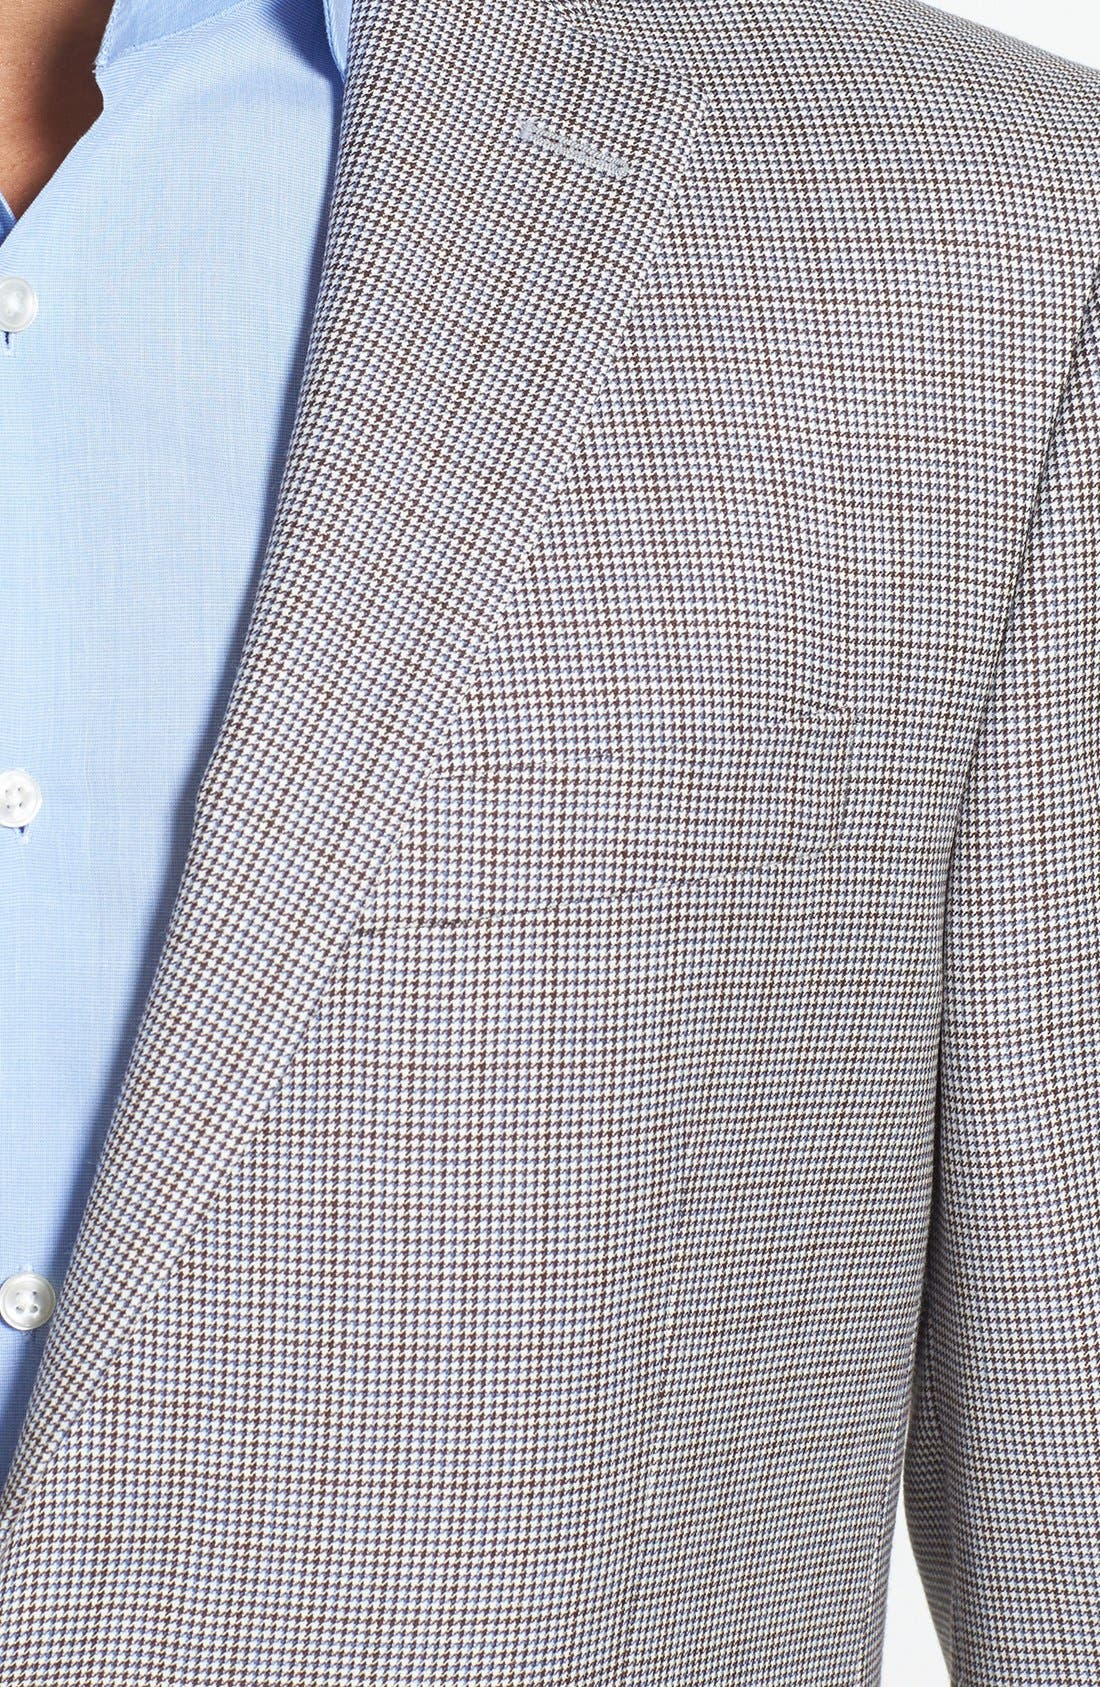 Alternate Image 3  - Peter Millar Classic Fit Check Sportcoat